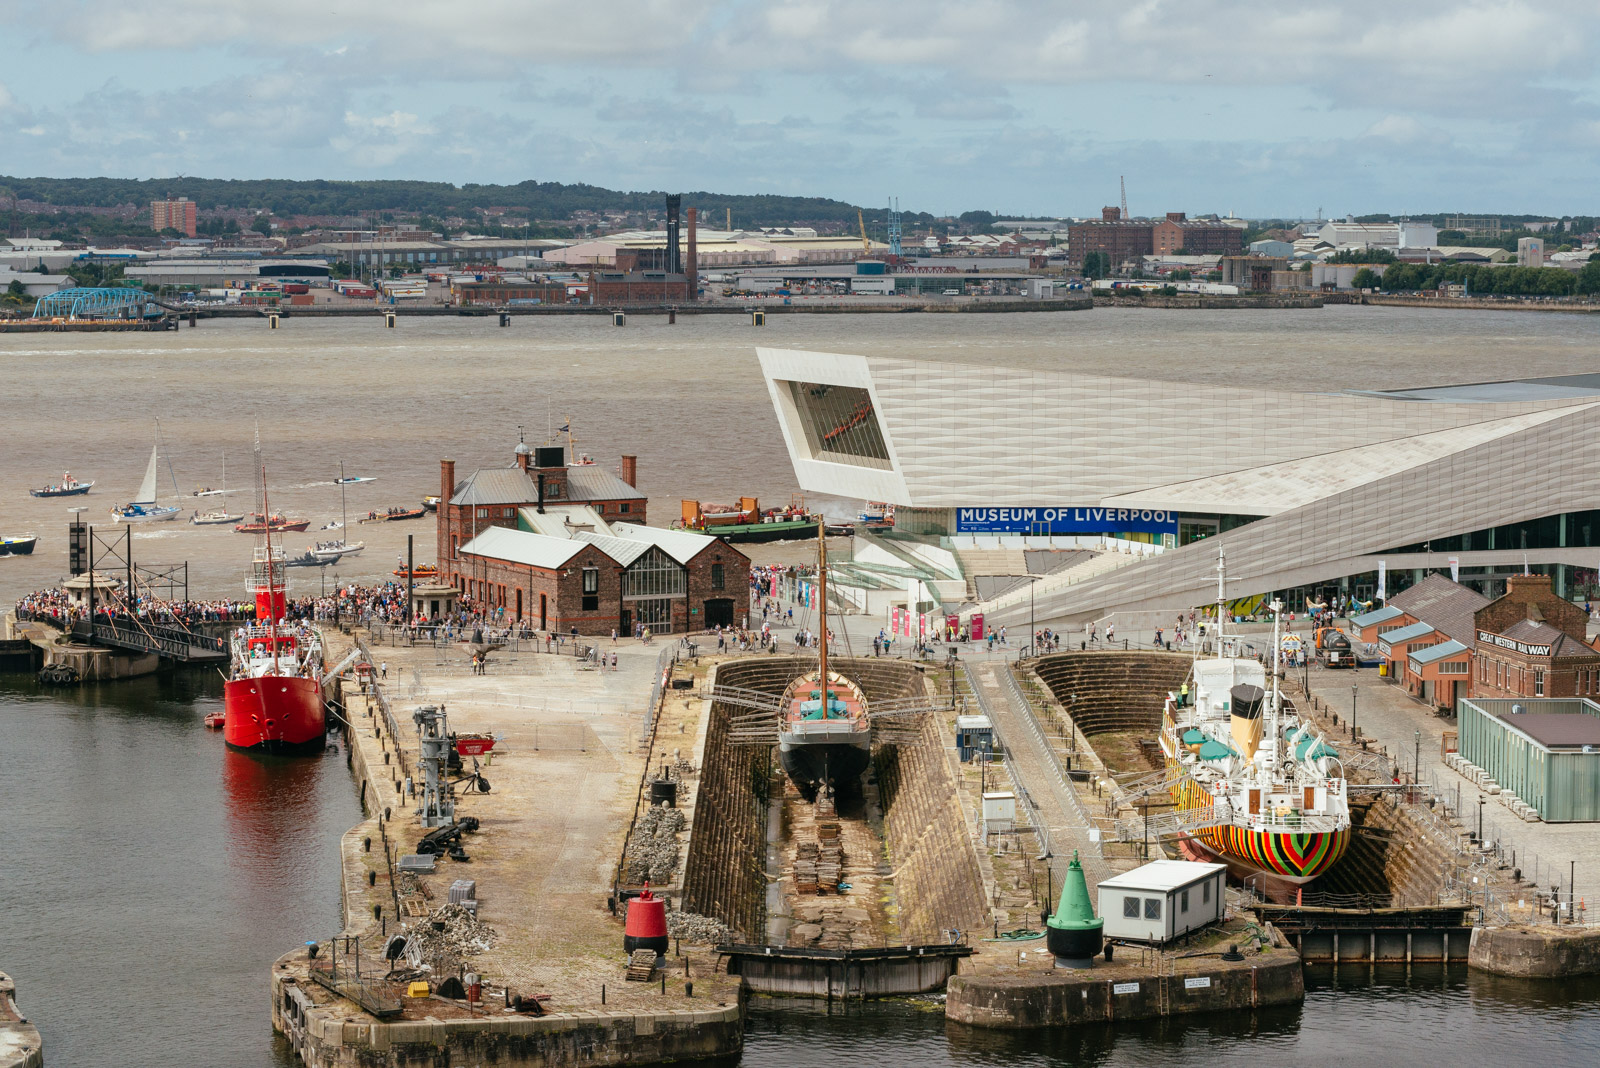 giants-liverpool-sunday-2014-pete-carr-9358